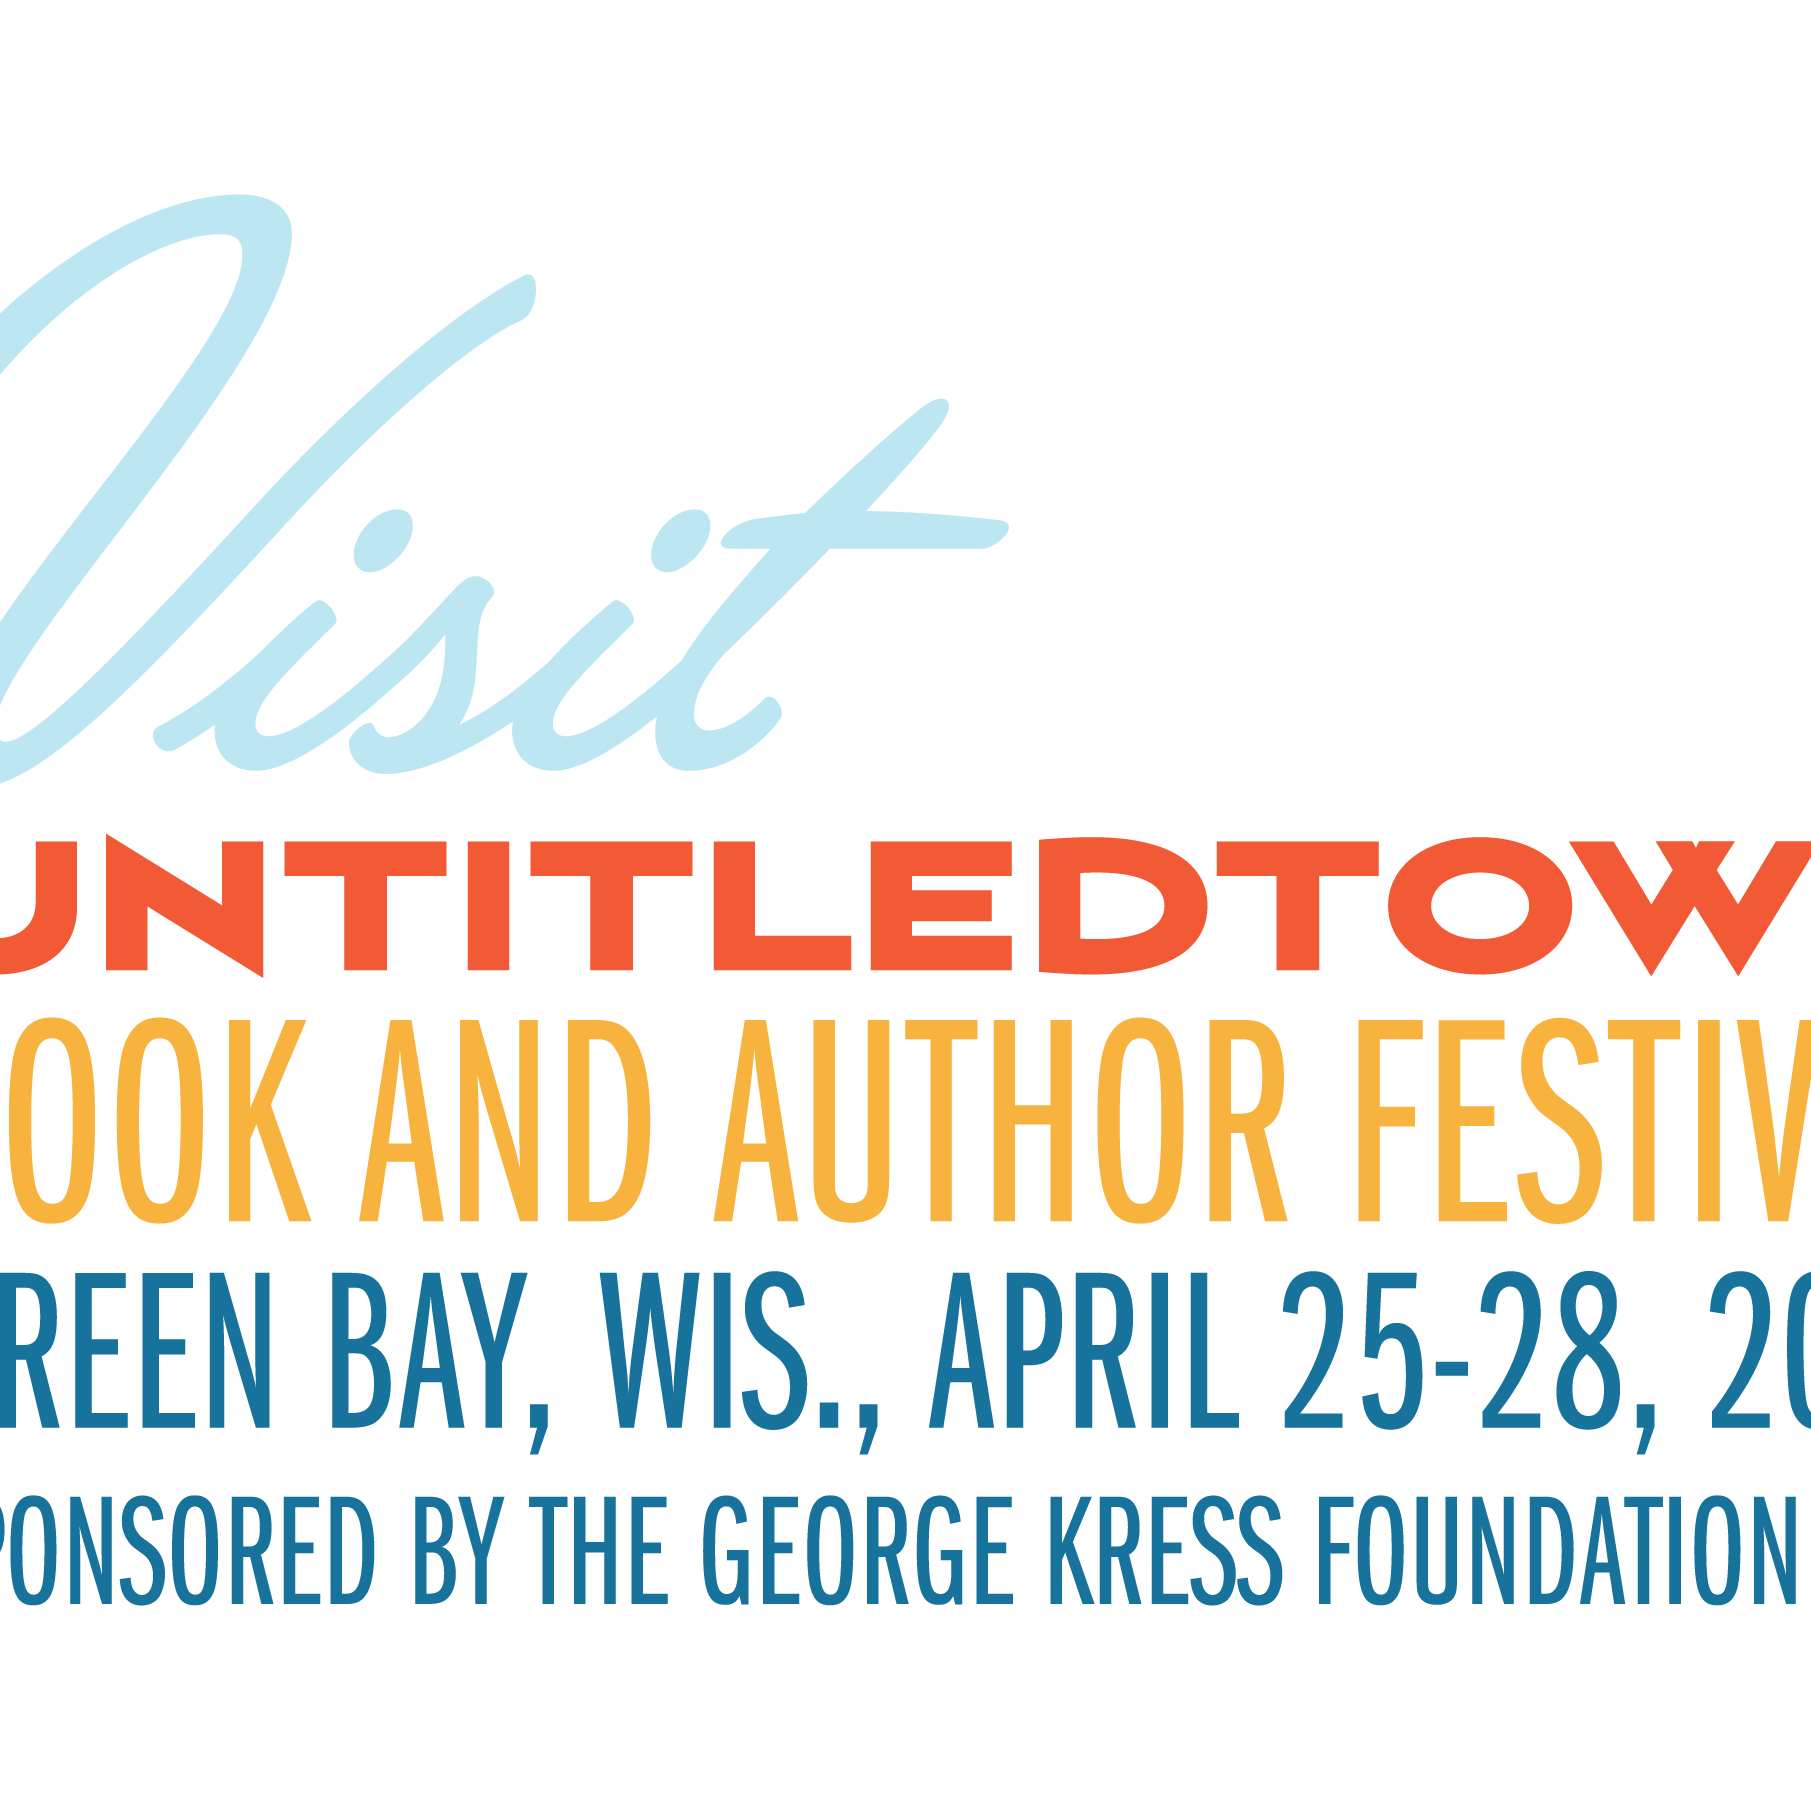 Book it to Green Bay for UntitledTown: 5 things to know about the book festival, now in its third year